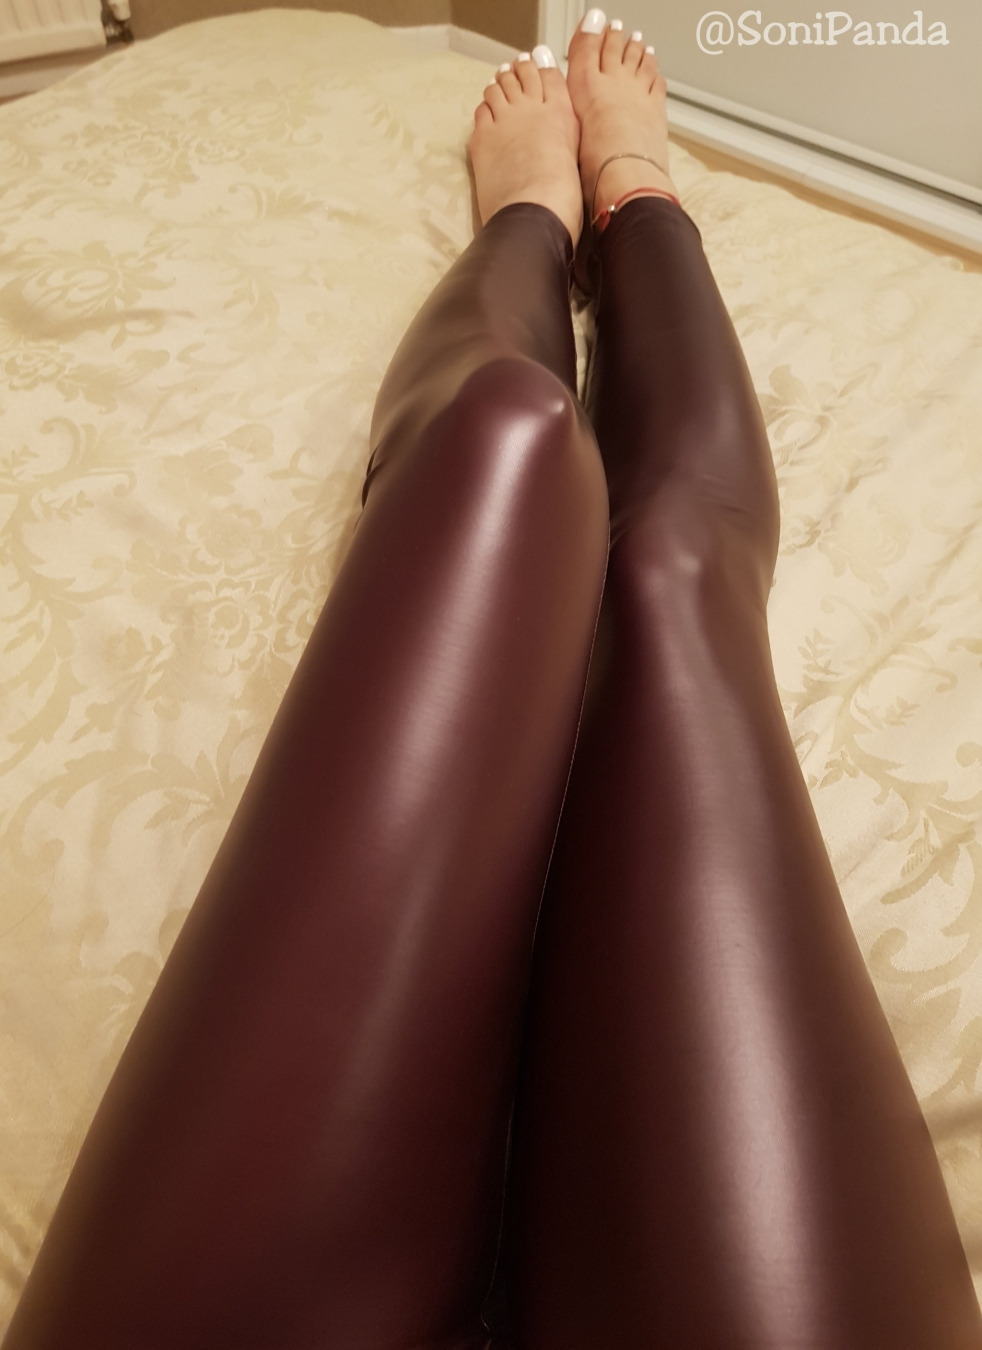 e68d57b92fdf02 Calzedonia Leather Effect Leggings – sonipandablog